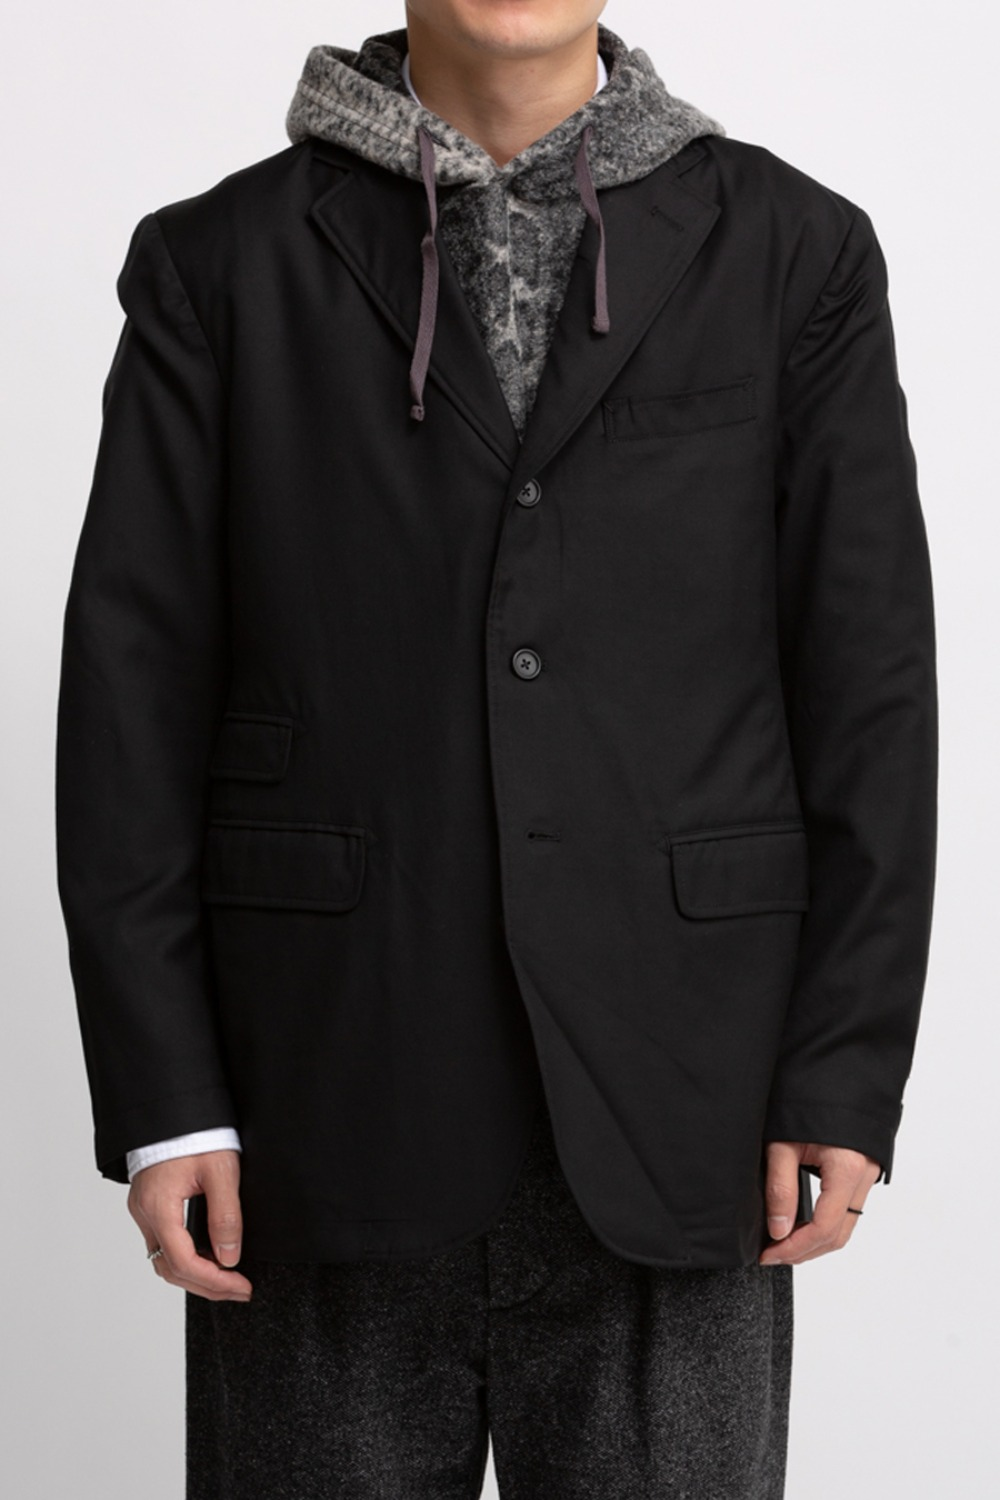 LAWRENCE JACKET BLACK WORSTED WOOL GABADINE